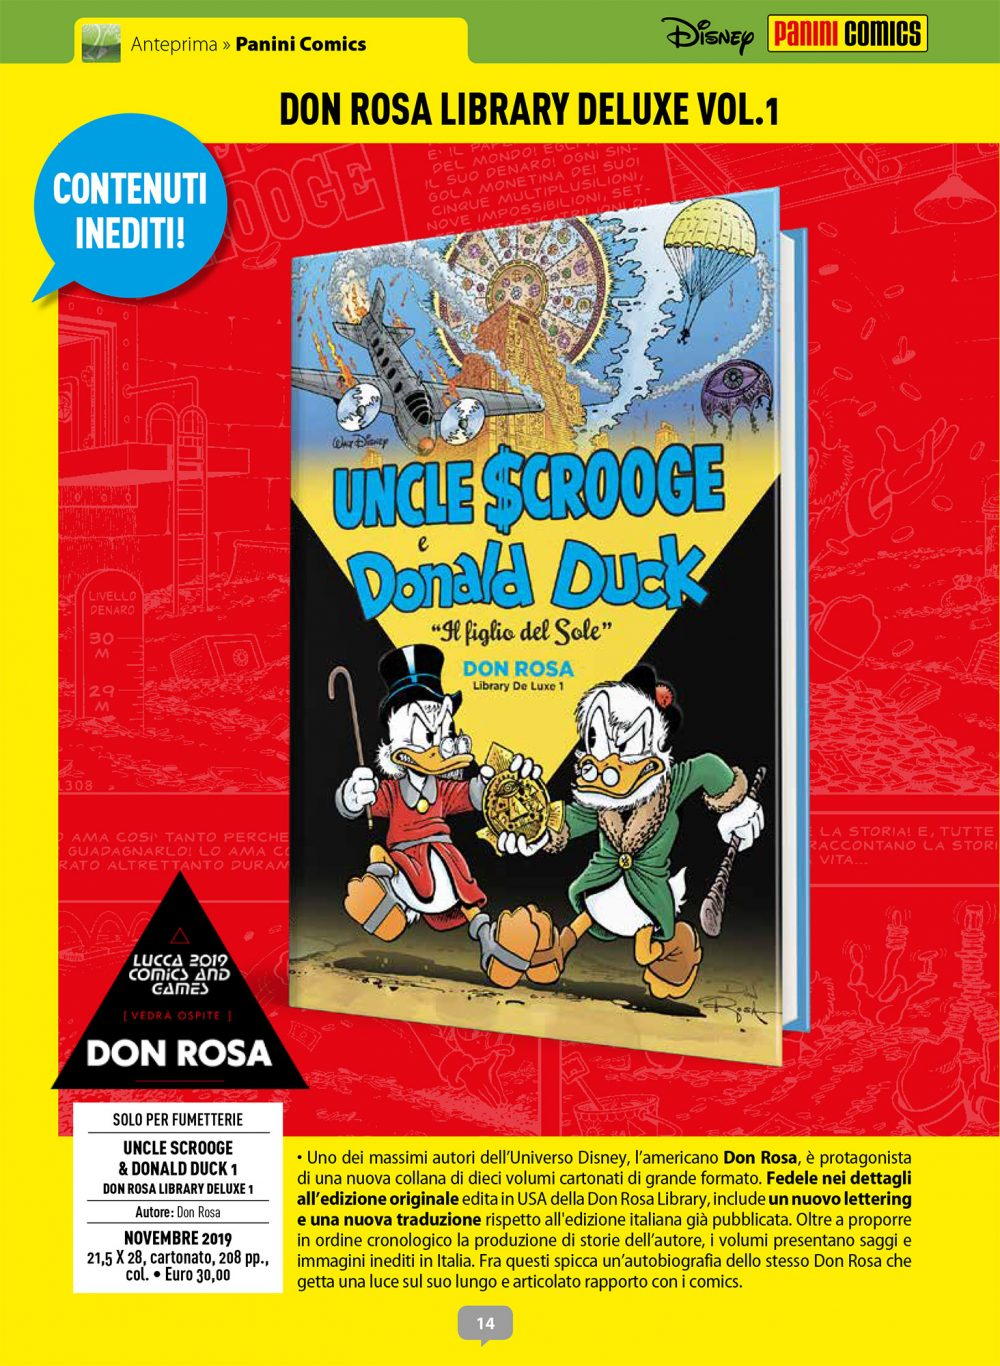 Don Rosa Library Deluxe